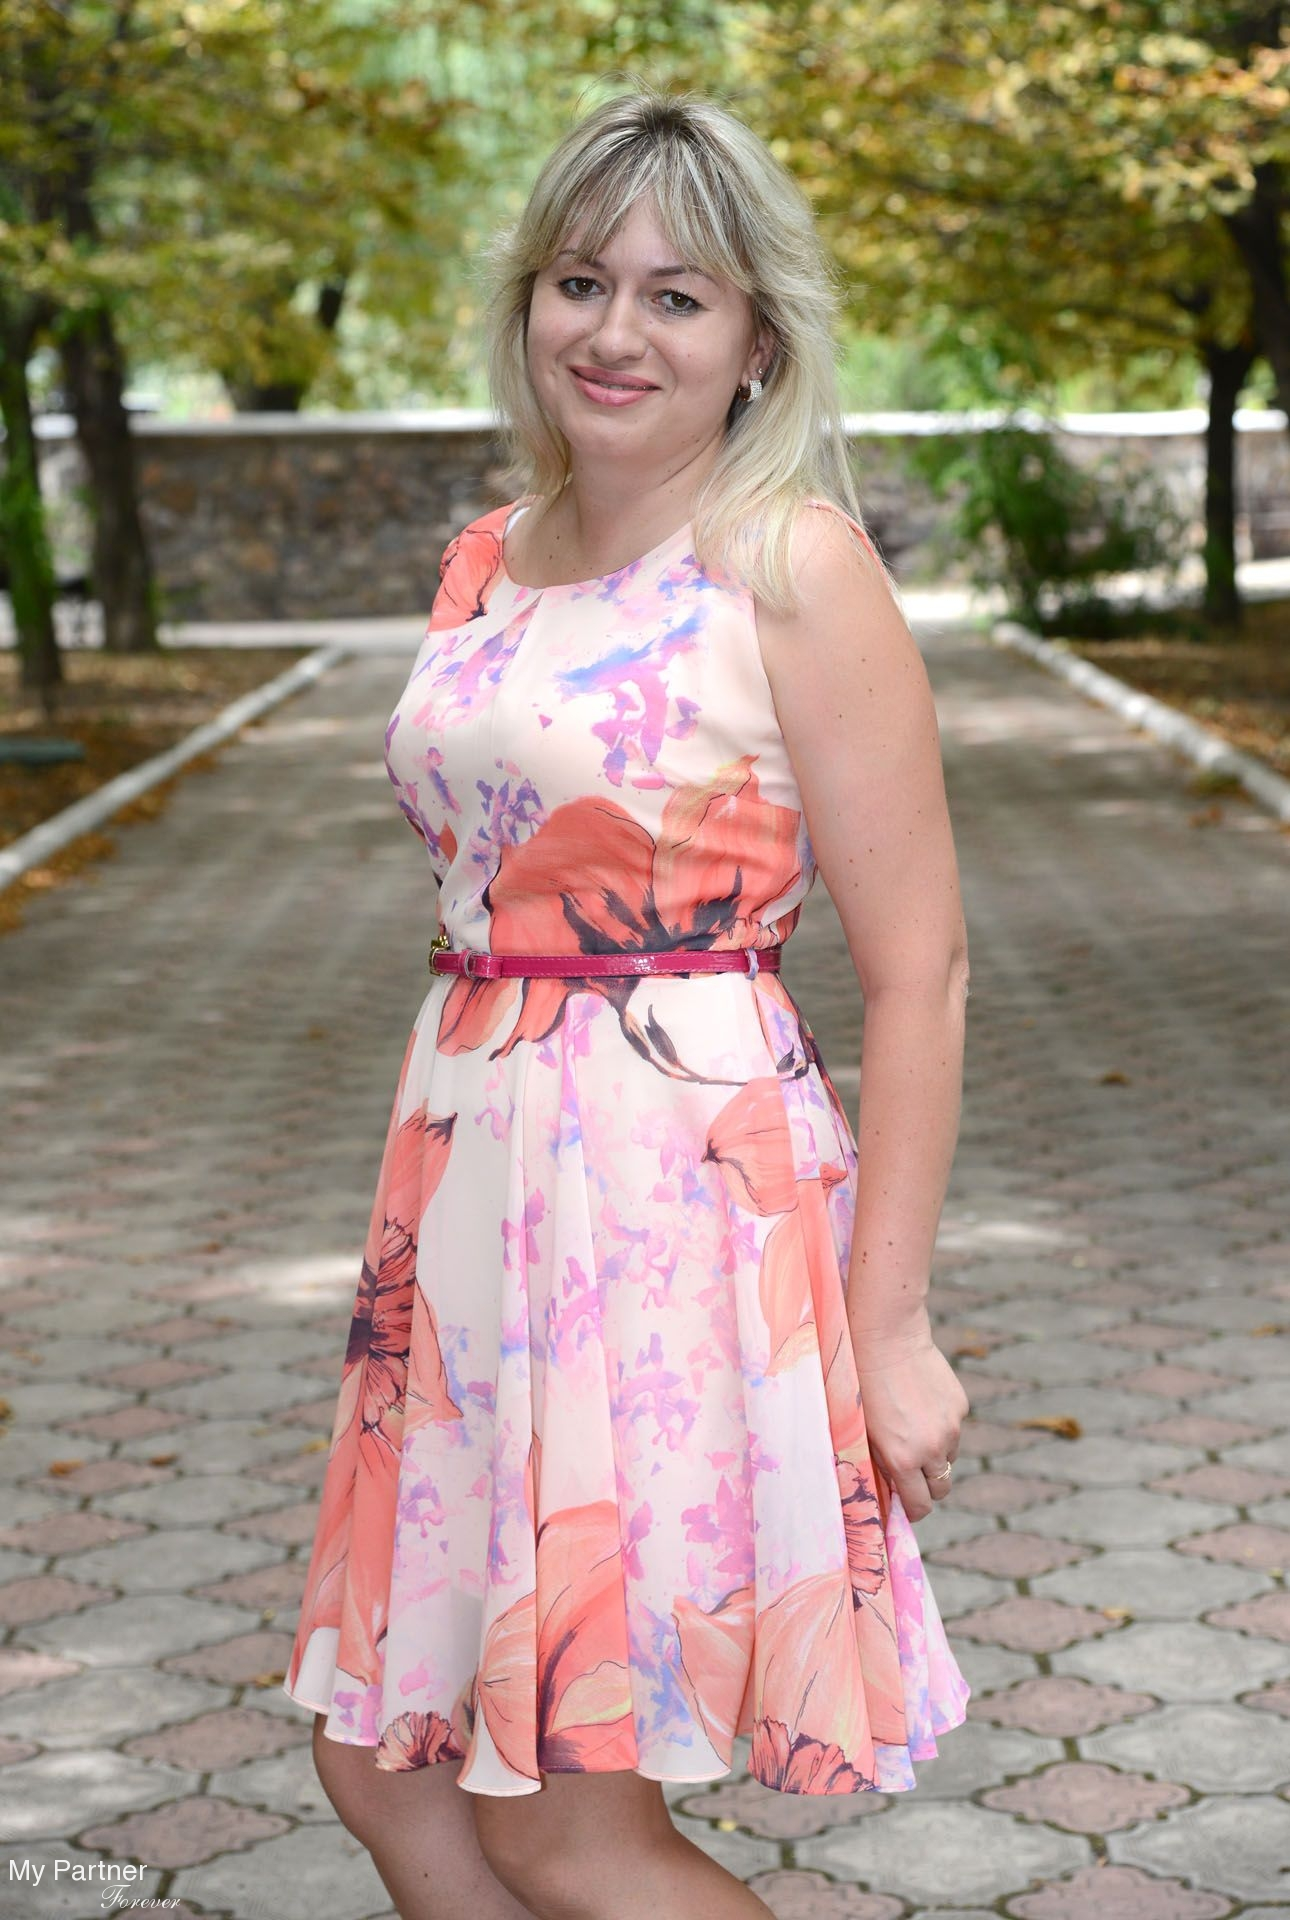 dating site for ukrainian lady